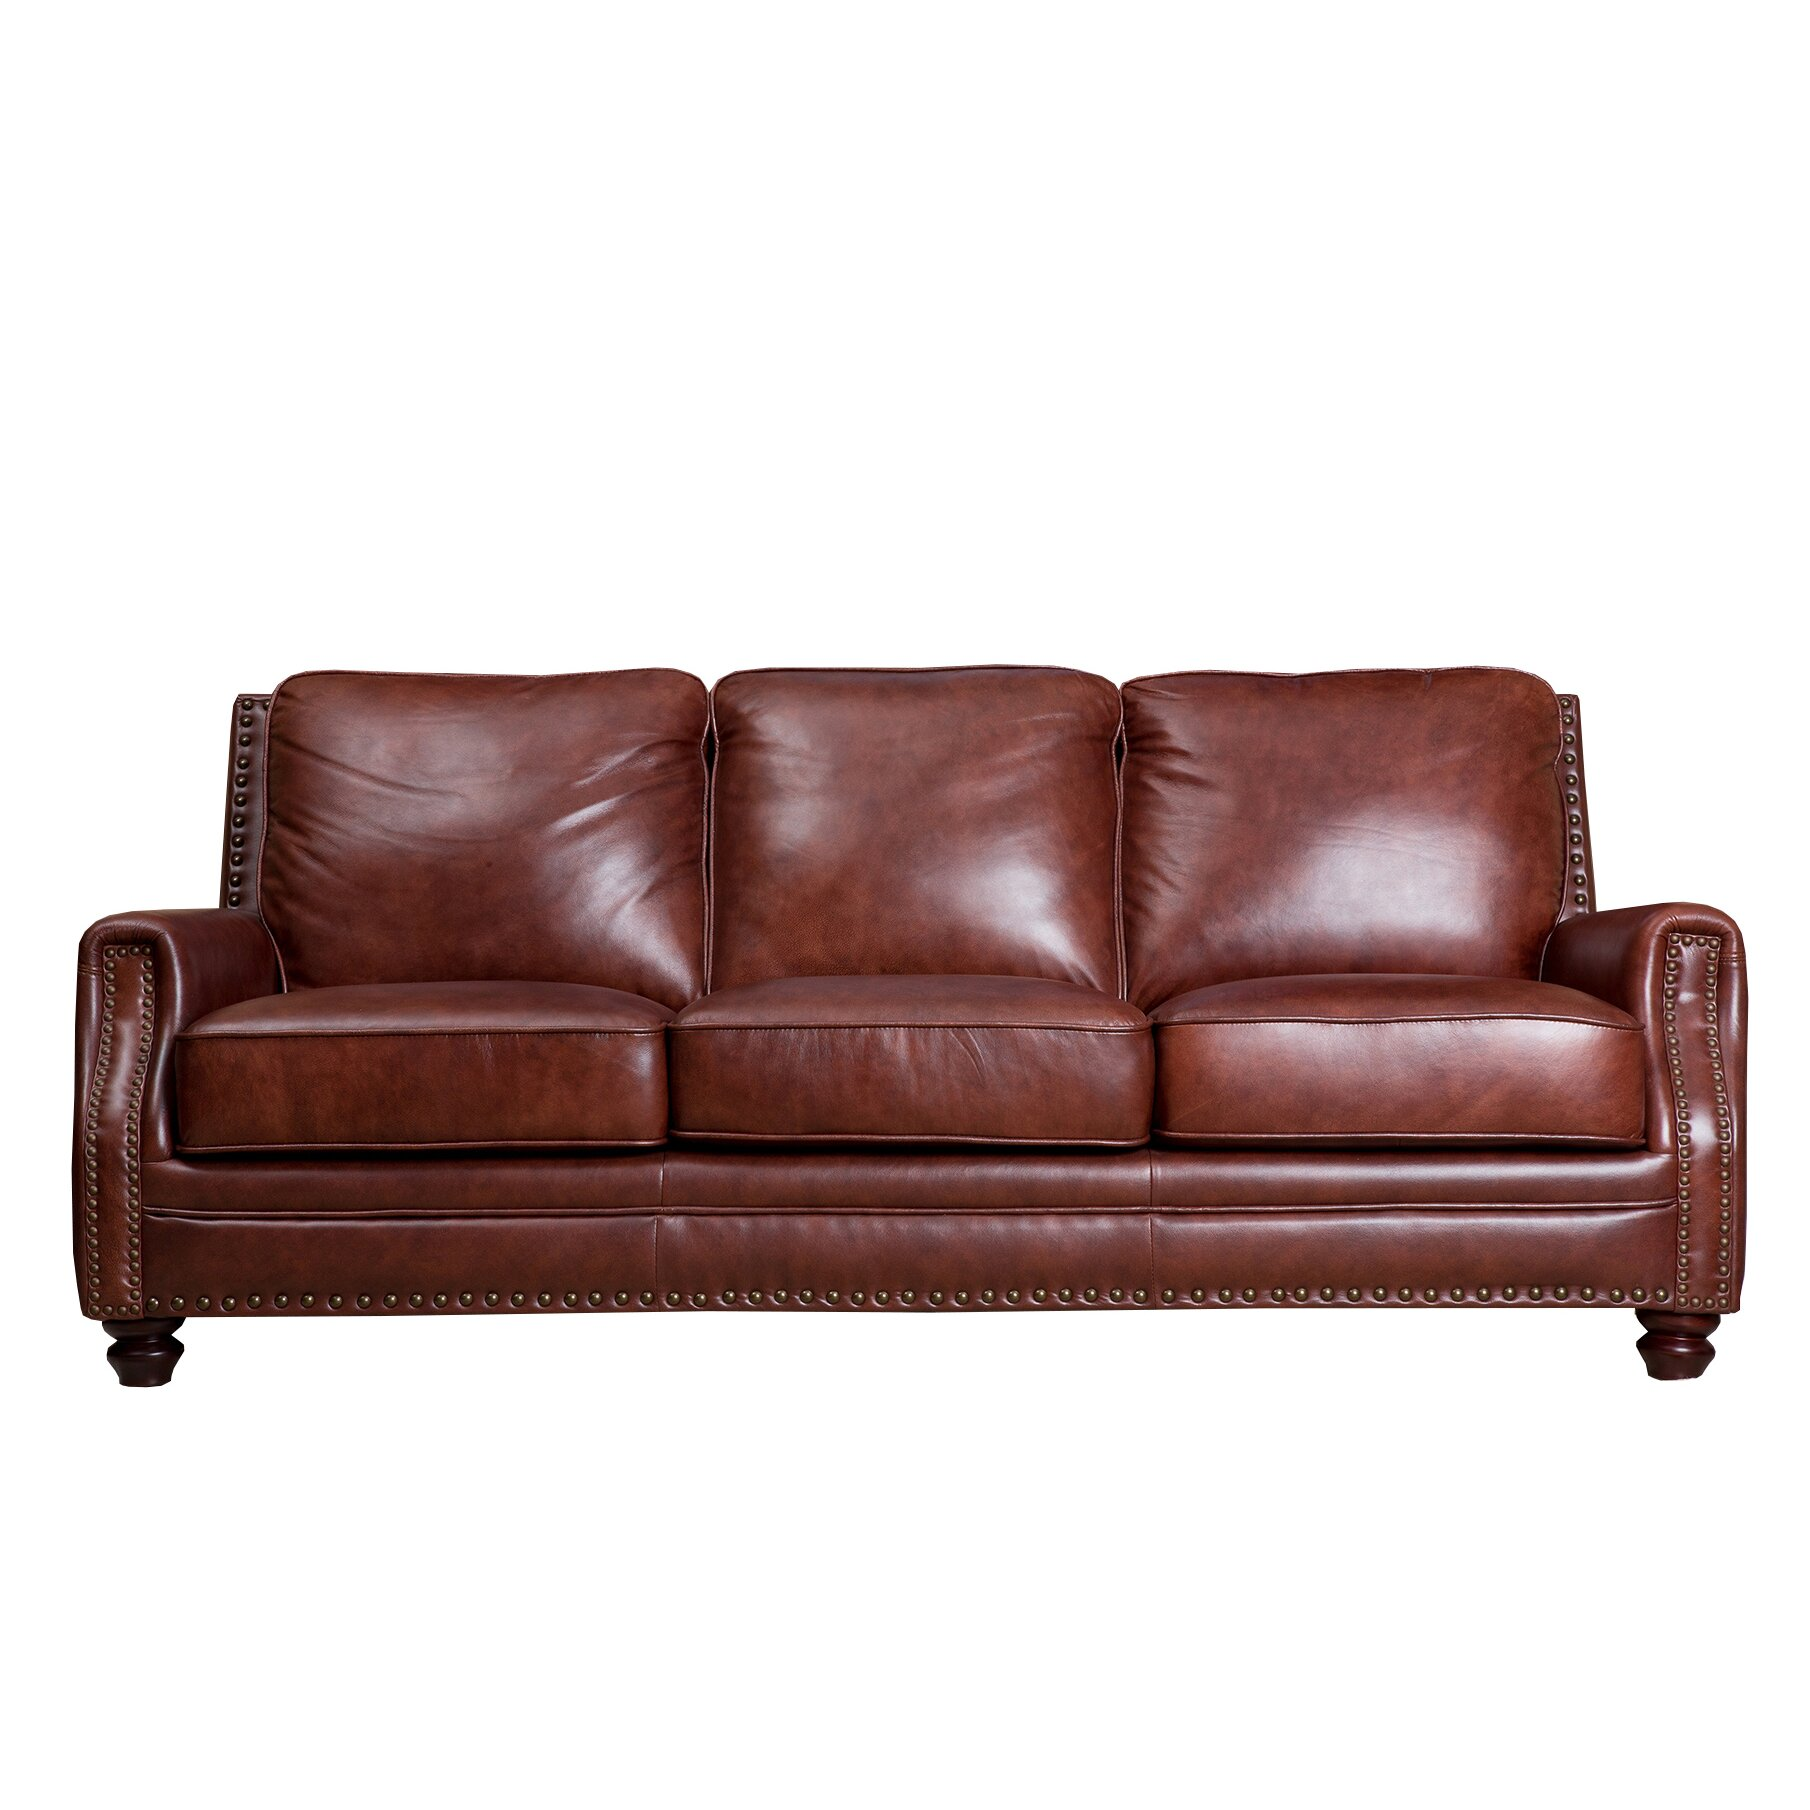 Abbyson Living Bel Air Leather Sofa & Reviews